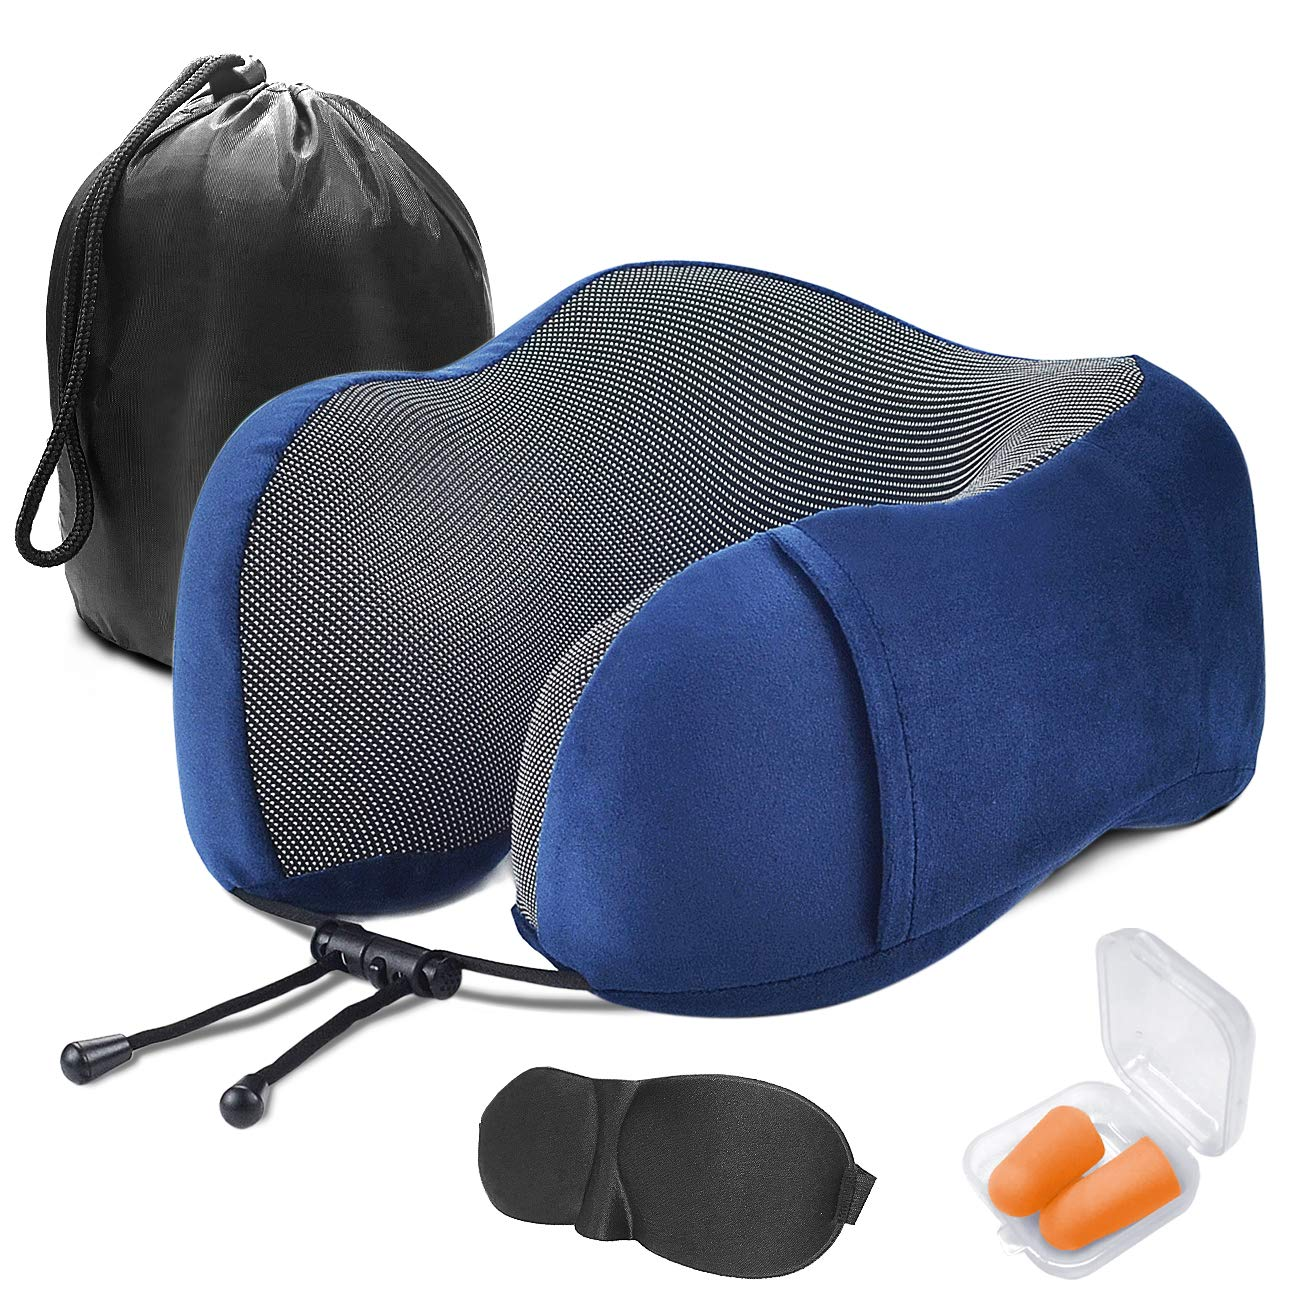 Blue Mengmall Travel Pillow,Travel Neck Pillow for Airplanes,Memory Foam Travel Pillow Machine Washable with Eye Masks earplugs and Storage Bag Soft Hump Body Design Suitable for Travel Napping